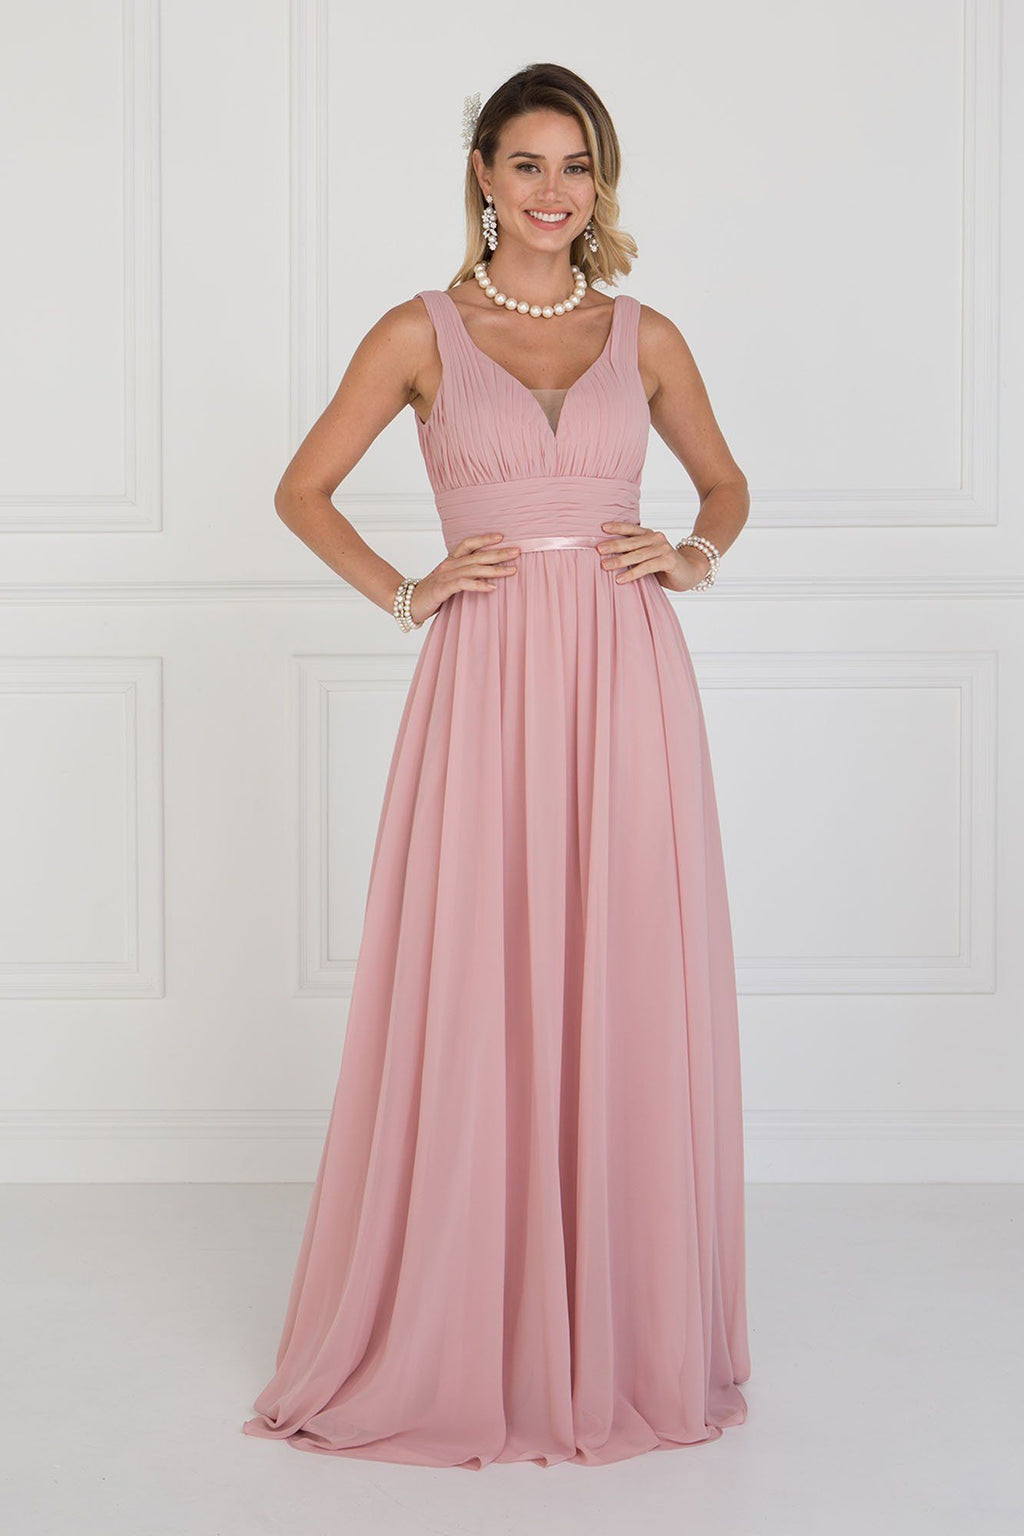 Ruched long bridesmaid dress  GLS 1525